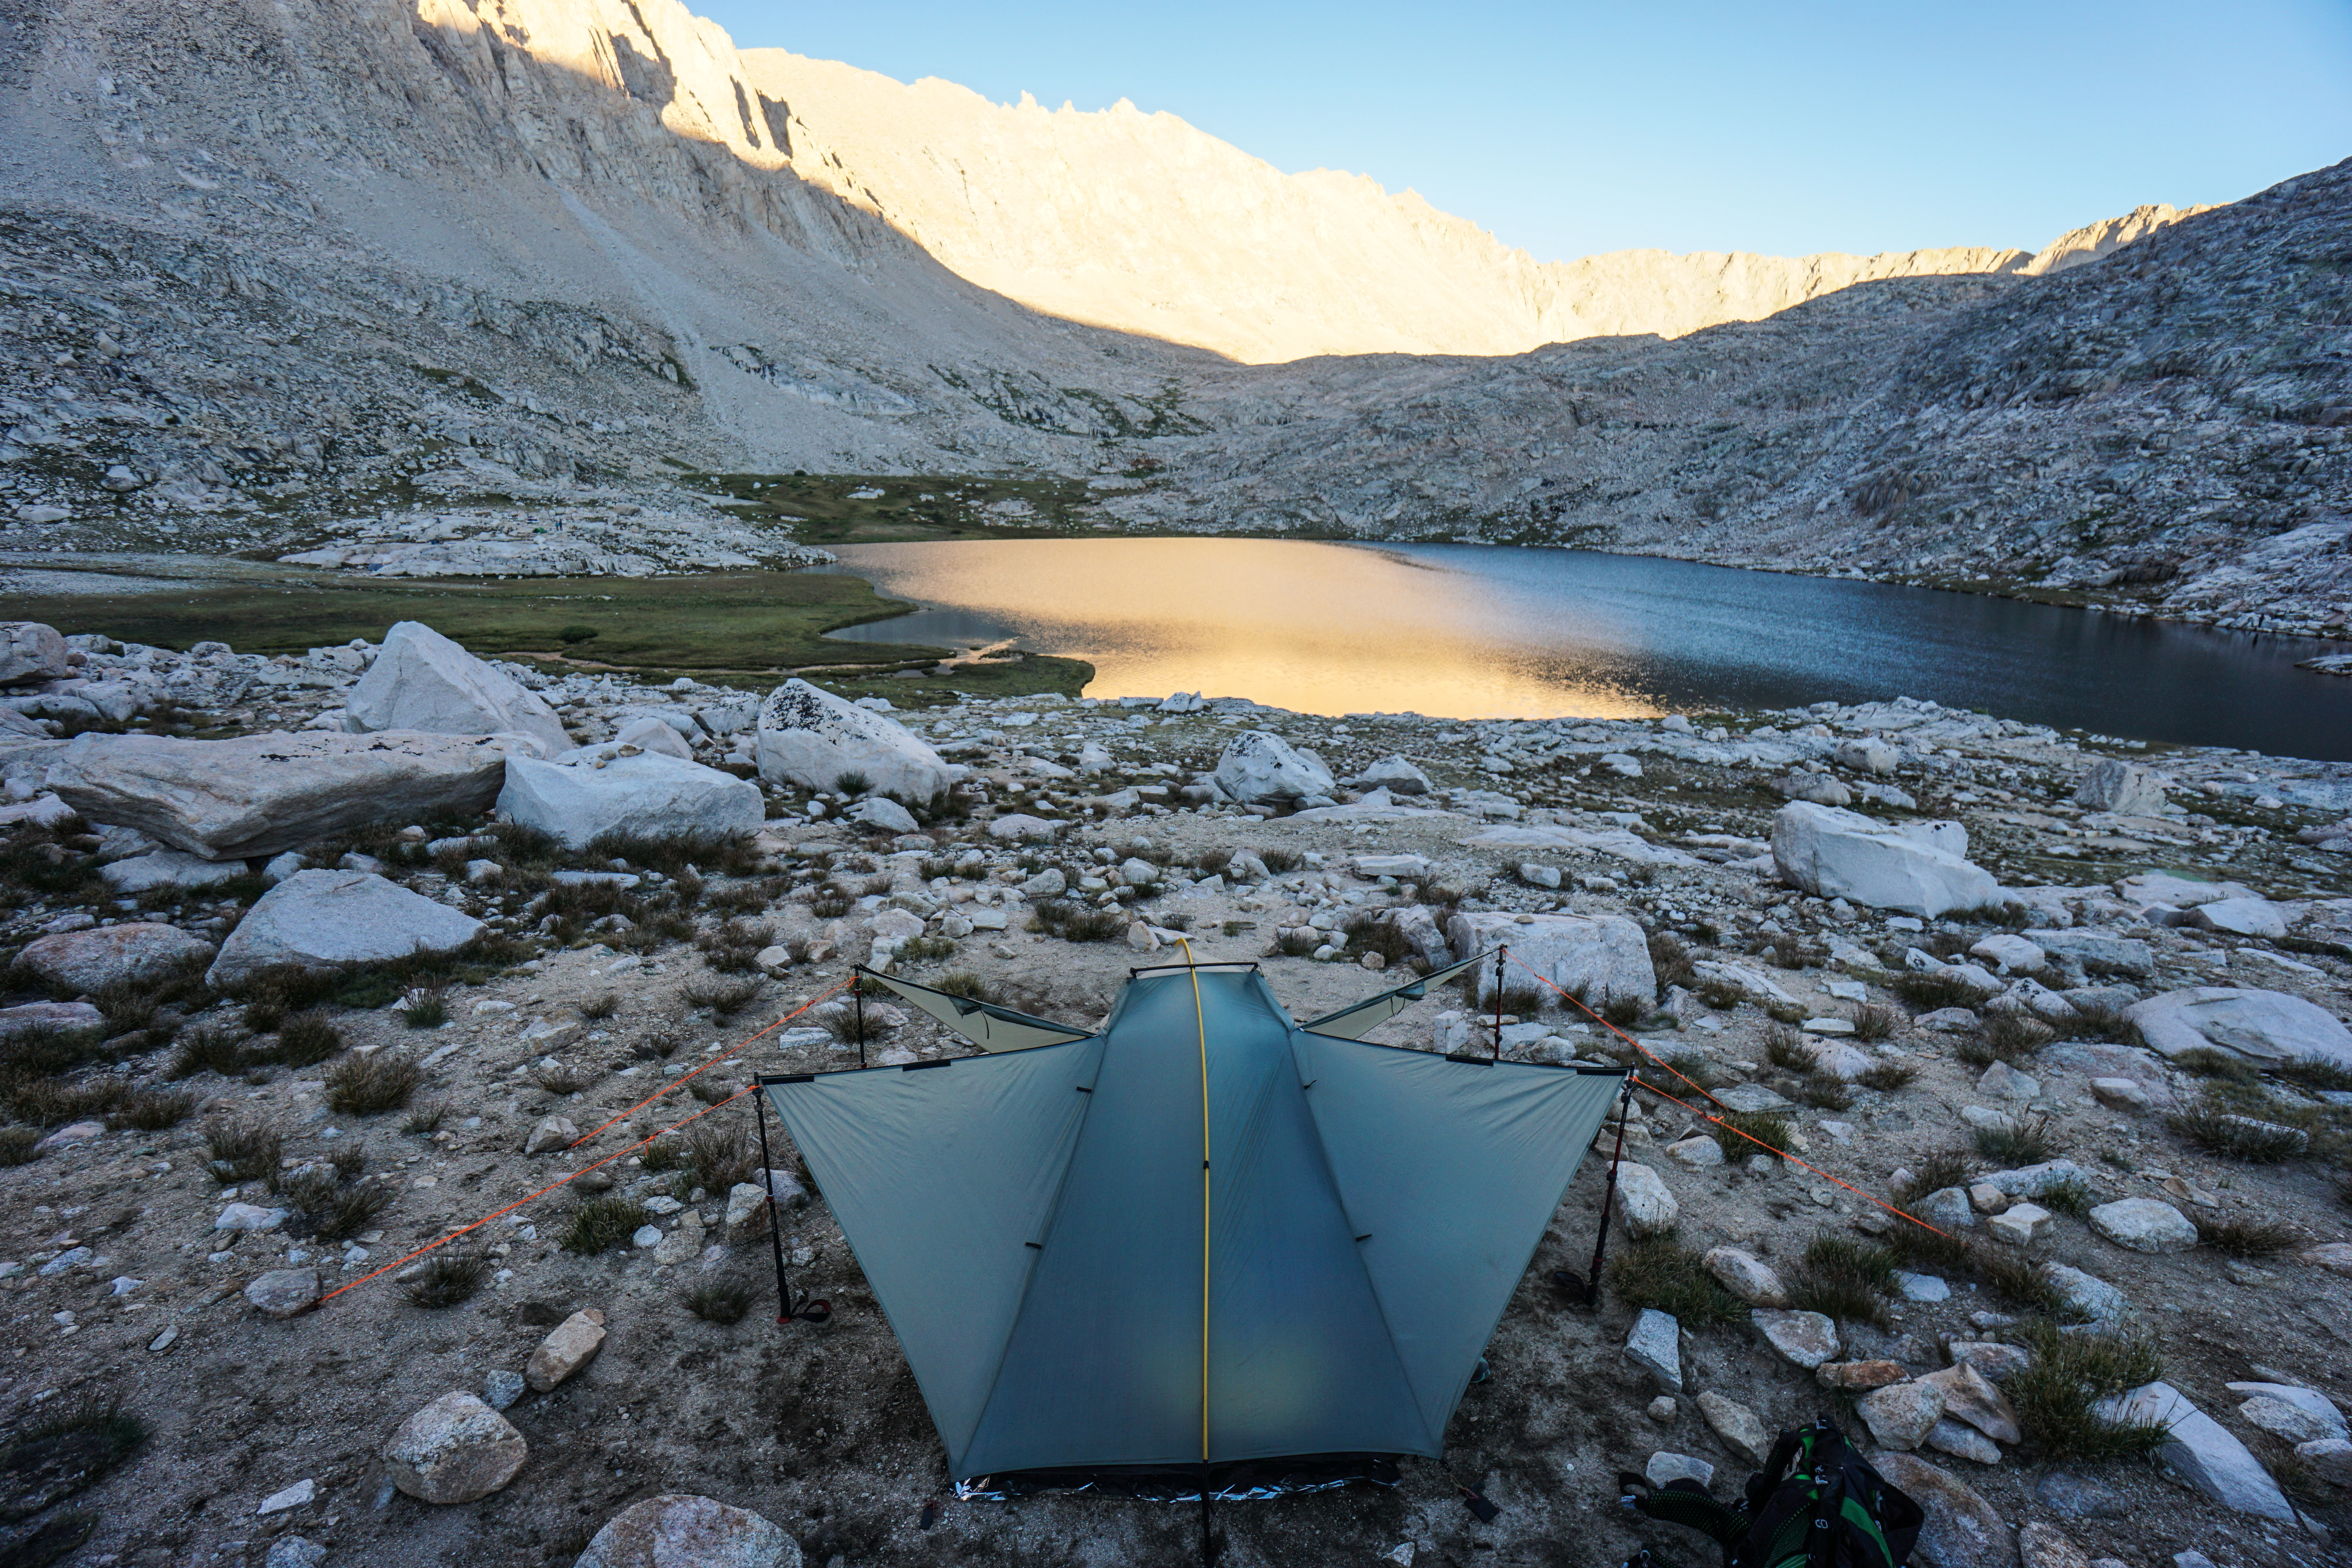 John Muir Trail Forester Pass Guitar Lake